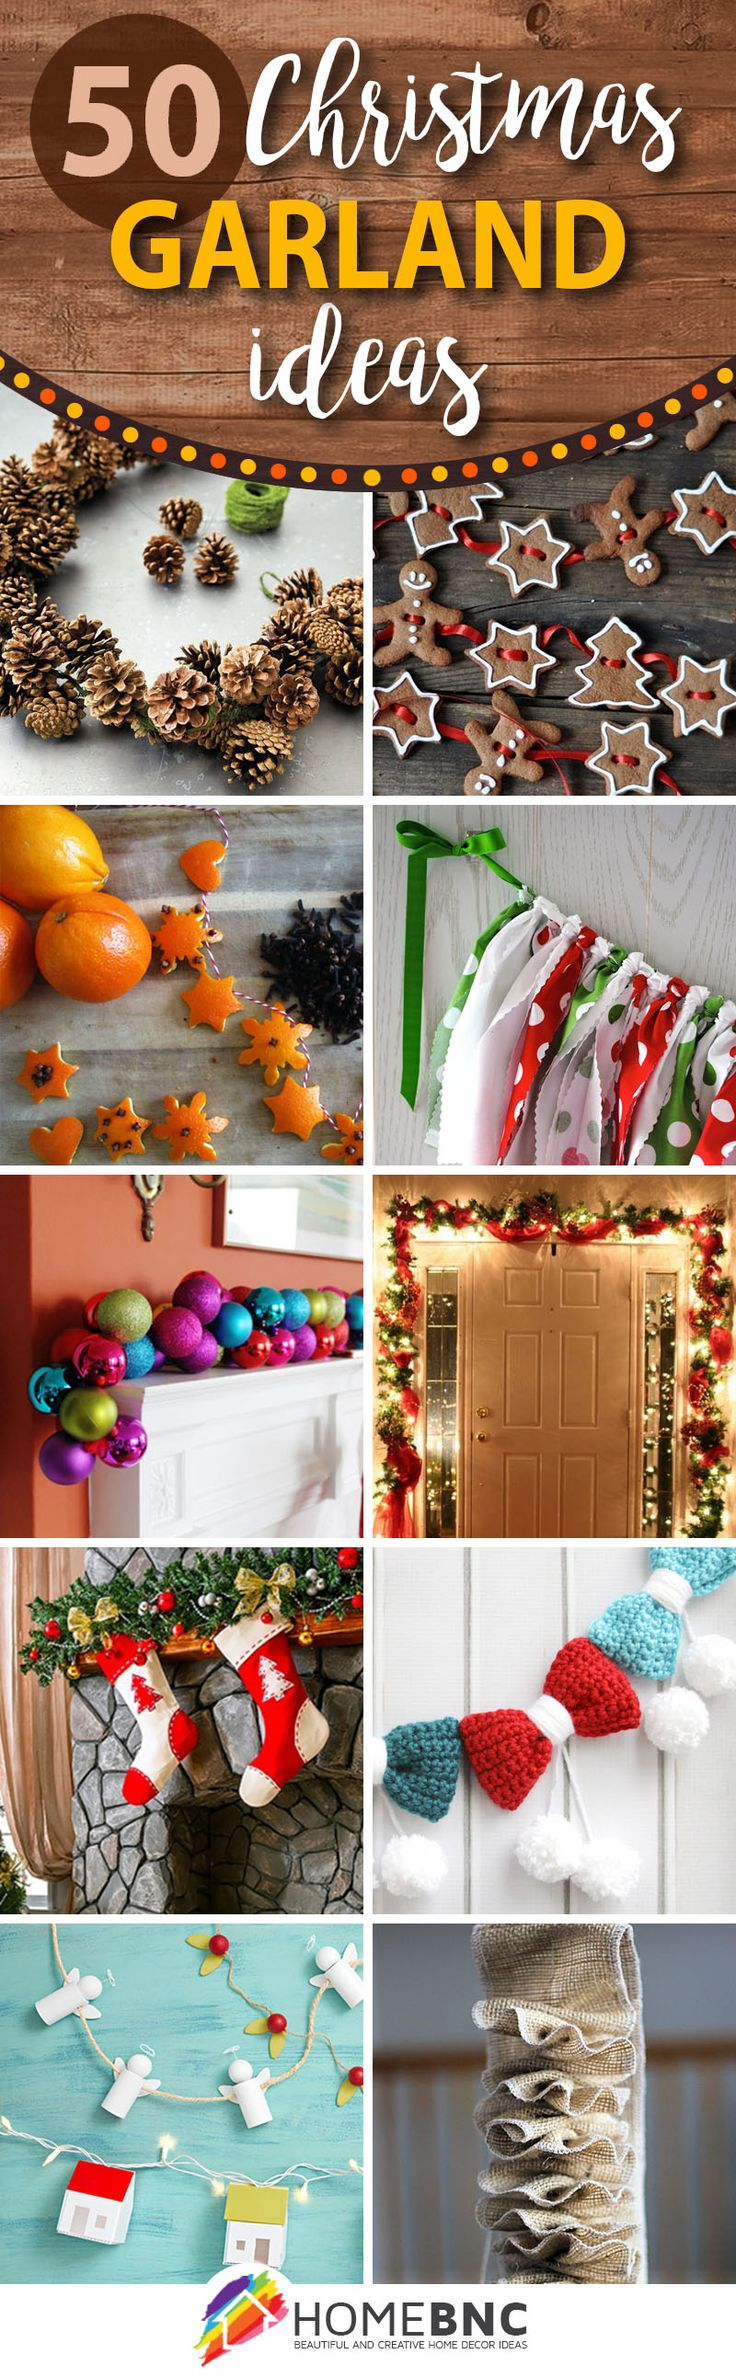 Best 25+ Garland ideas ideas on Pinterest | Christmas ...